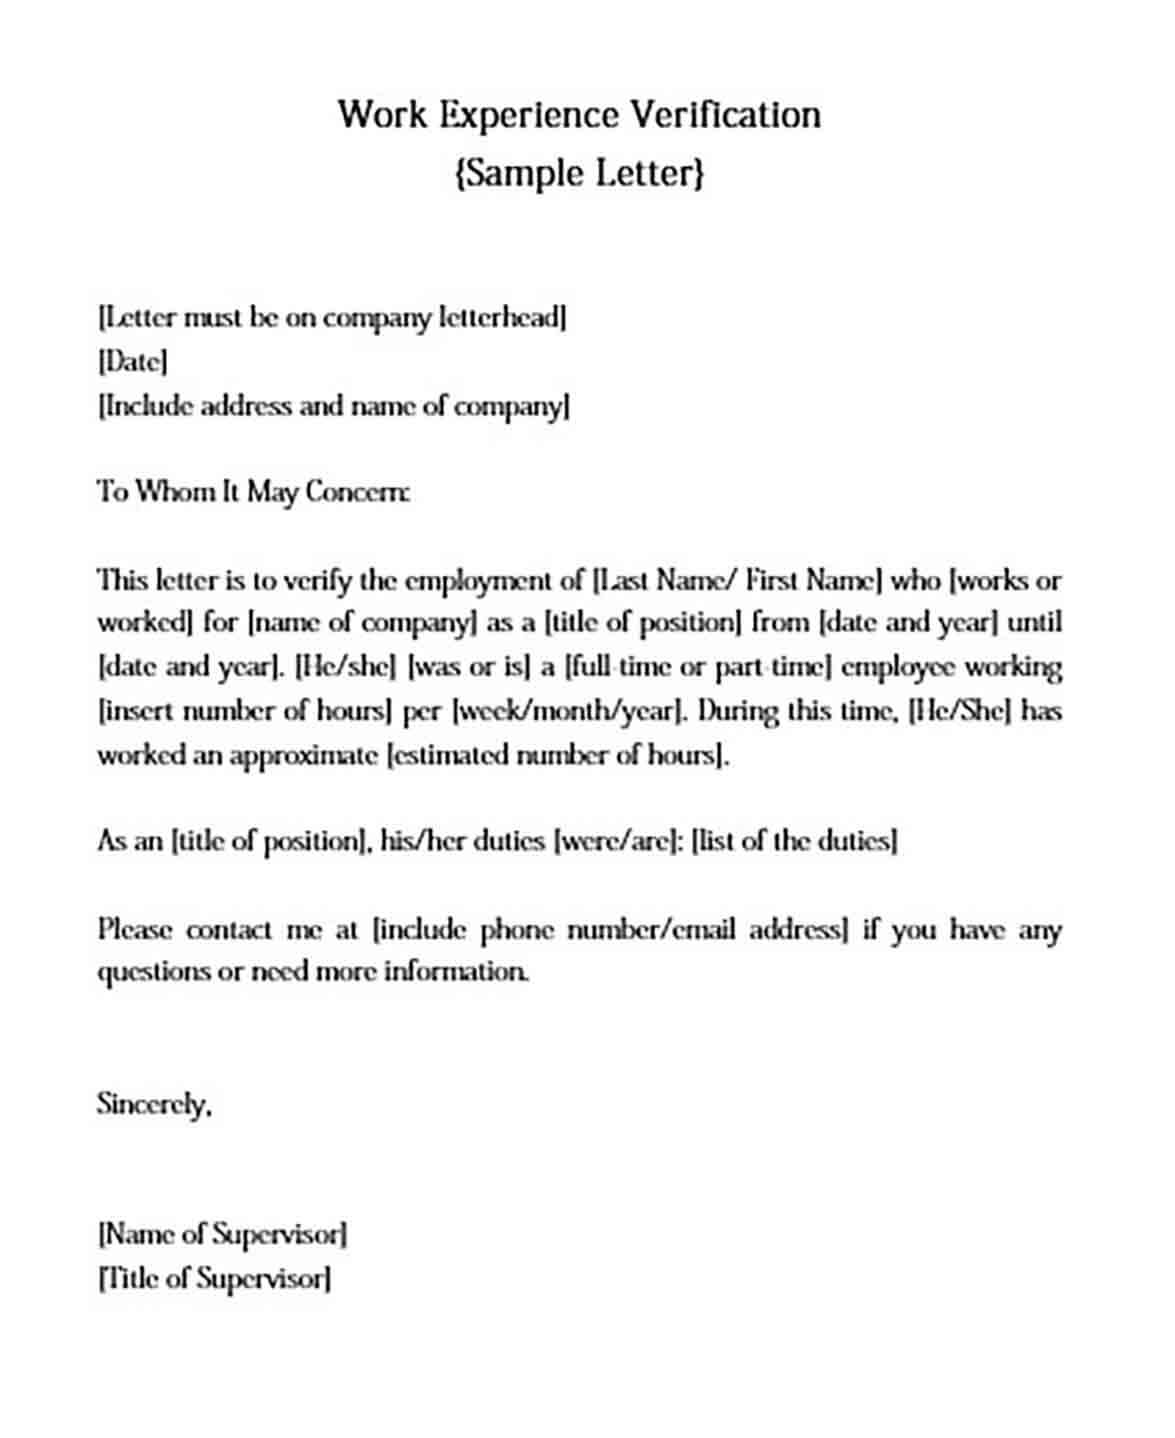 Employee Work Verification Letter